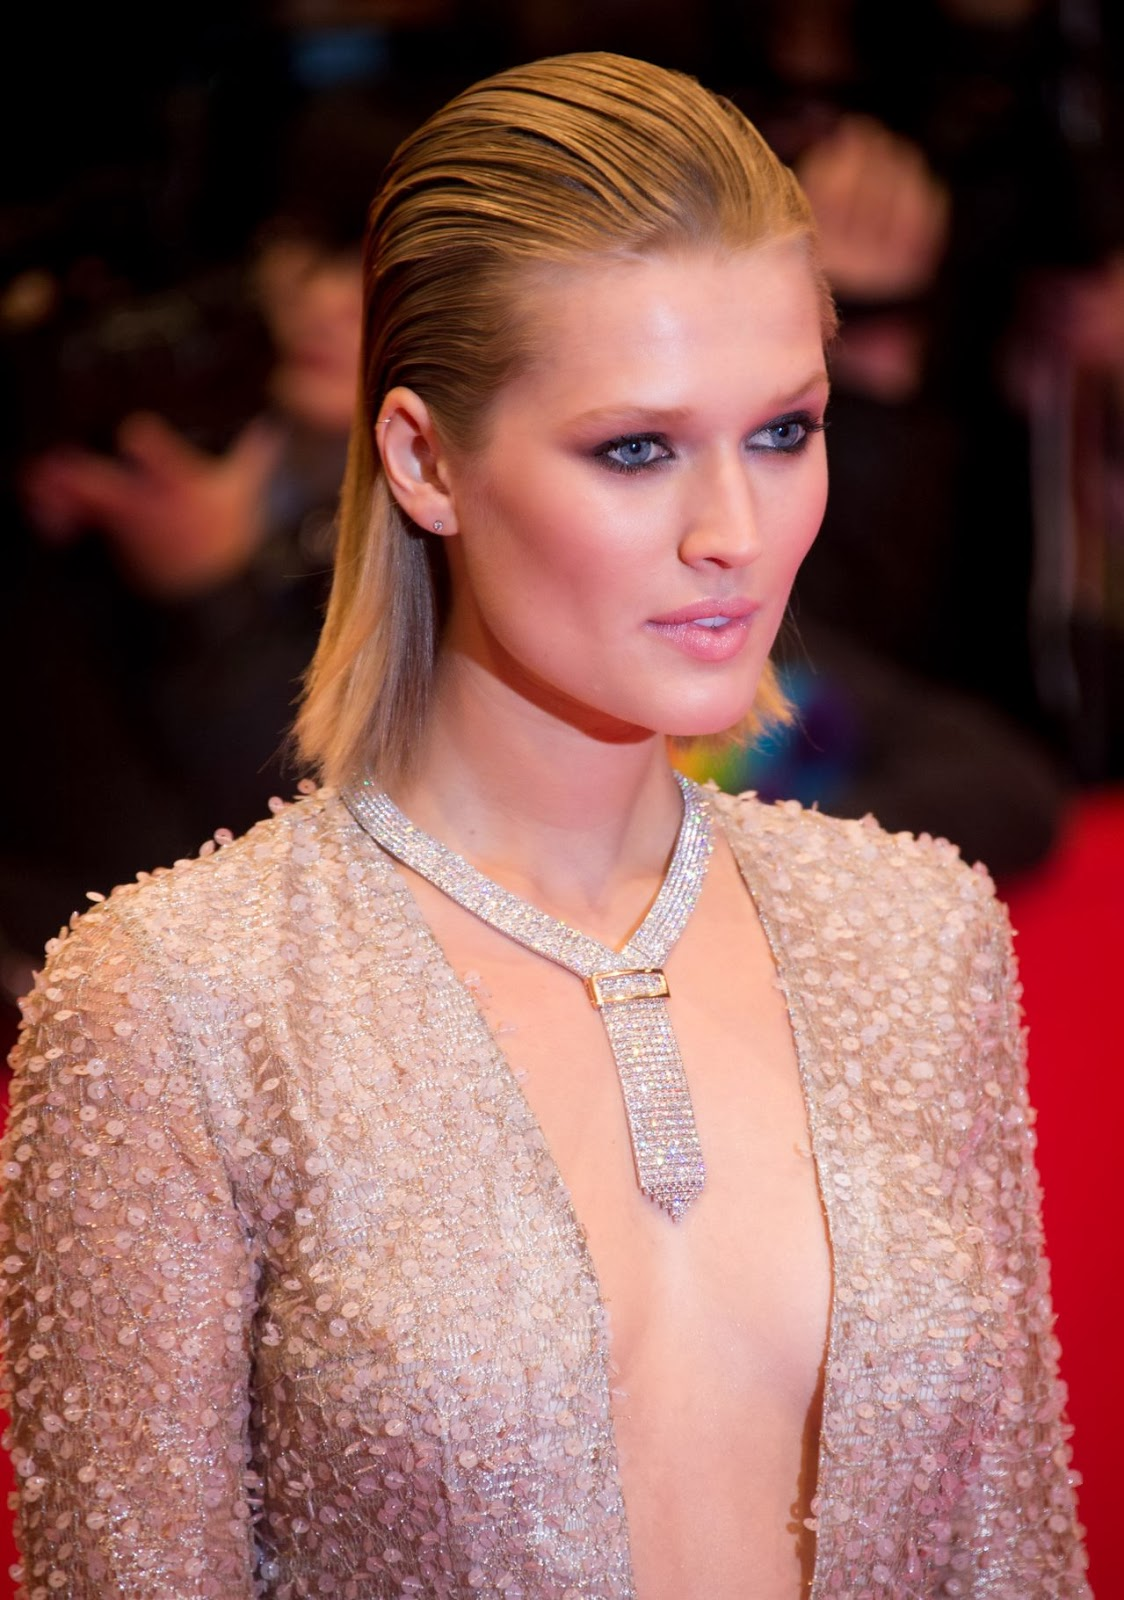 Toni Garrn braless showing cleavage at 'The Grand Budapest Hotel' premiere in Berlin